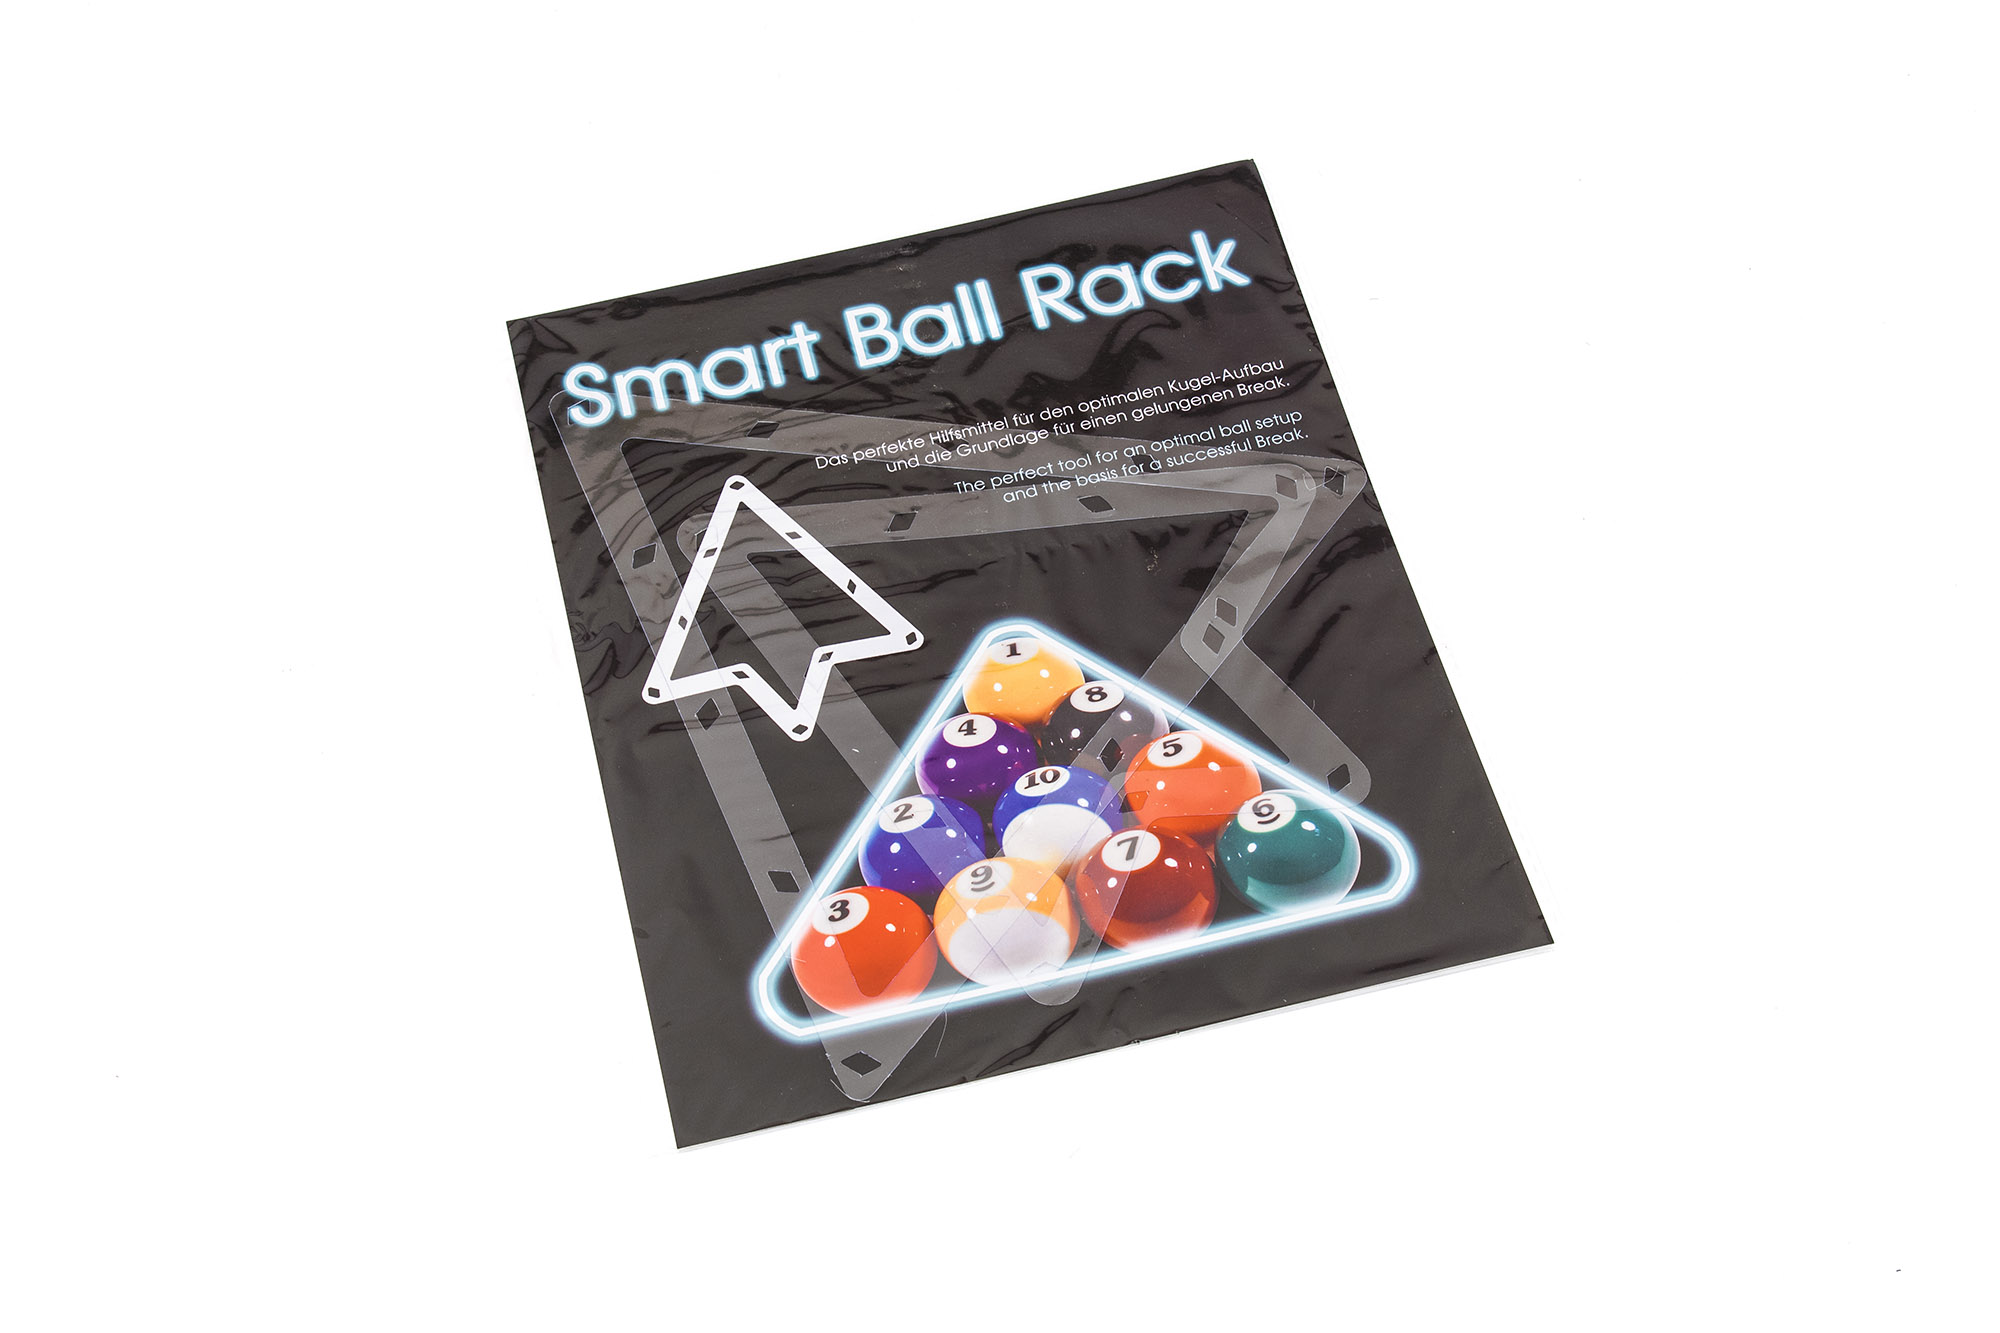 Stavítko Smart Ball Rack Pro - PVC - 2 ks - 8,9,10 ball